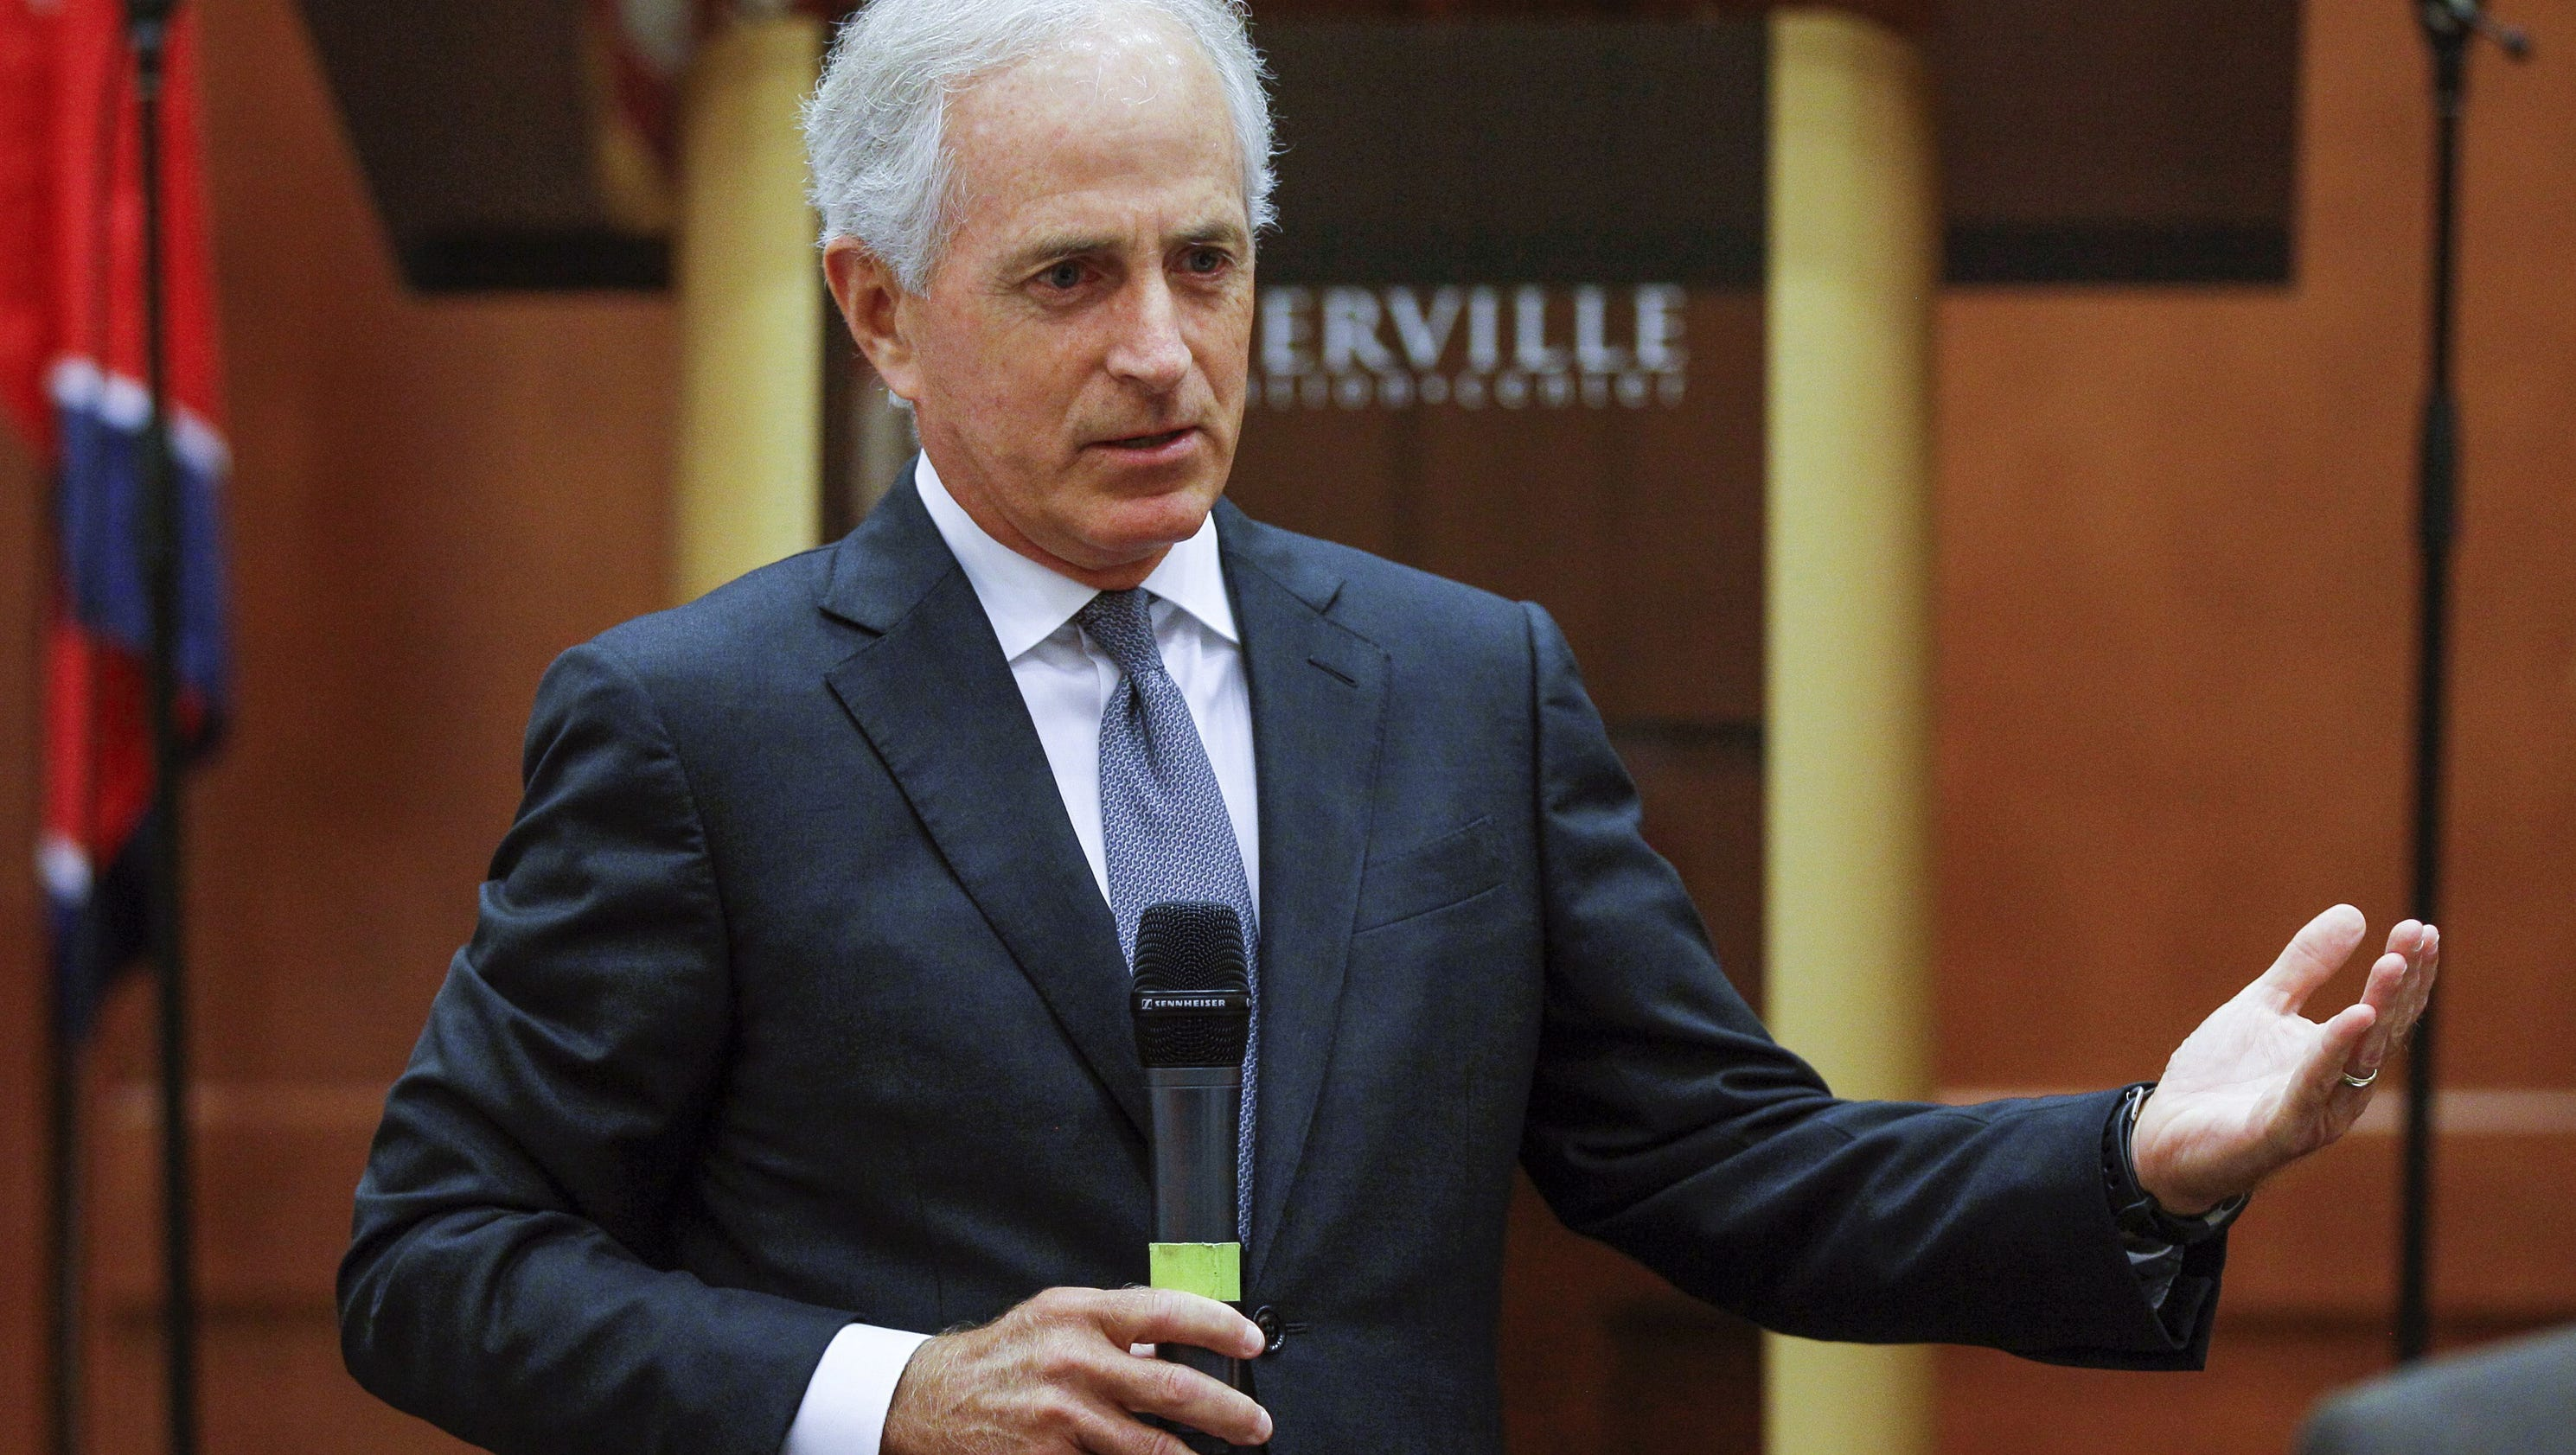 As President Trump moves to decertify Iran deal, Sen. Bob Corker outlines plan to fix it